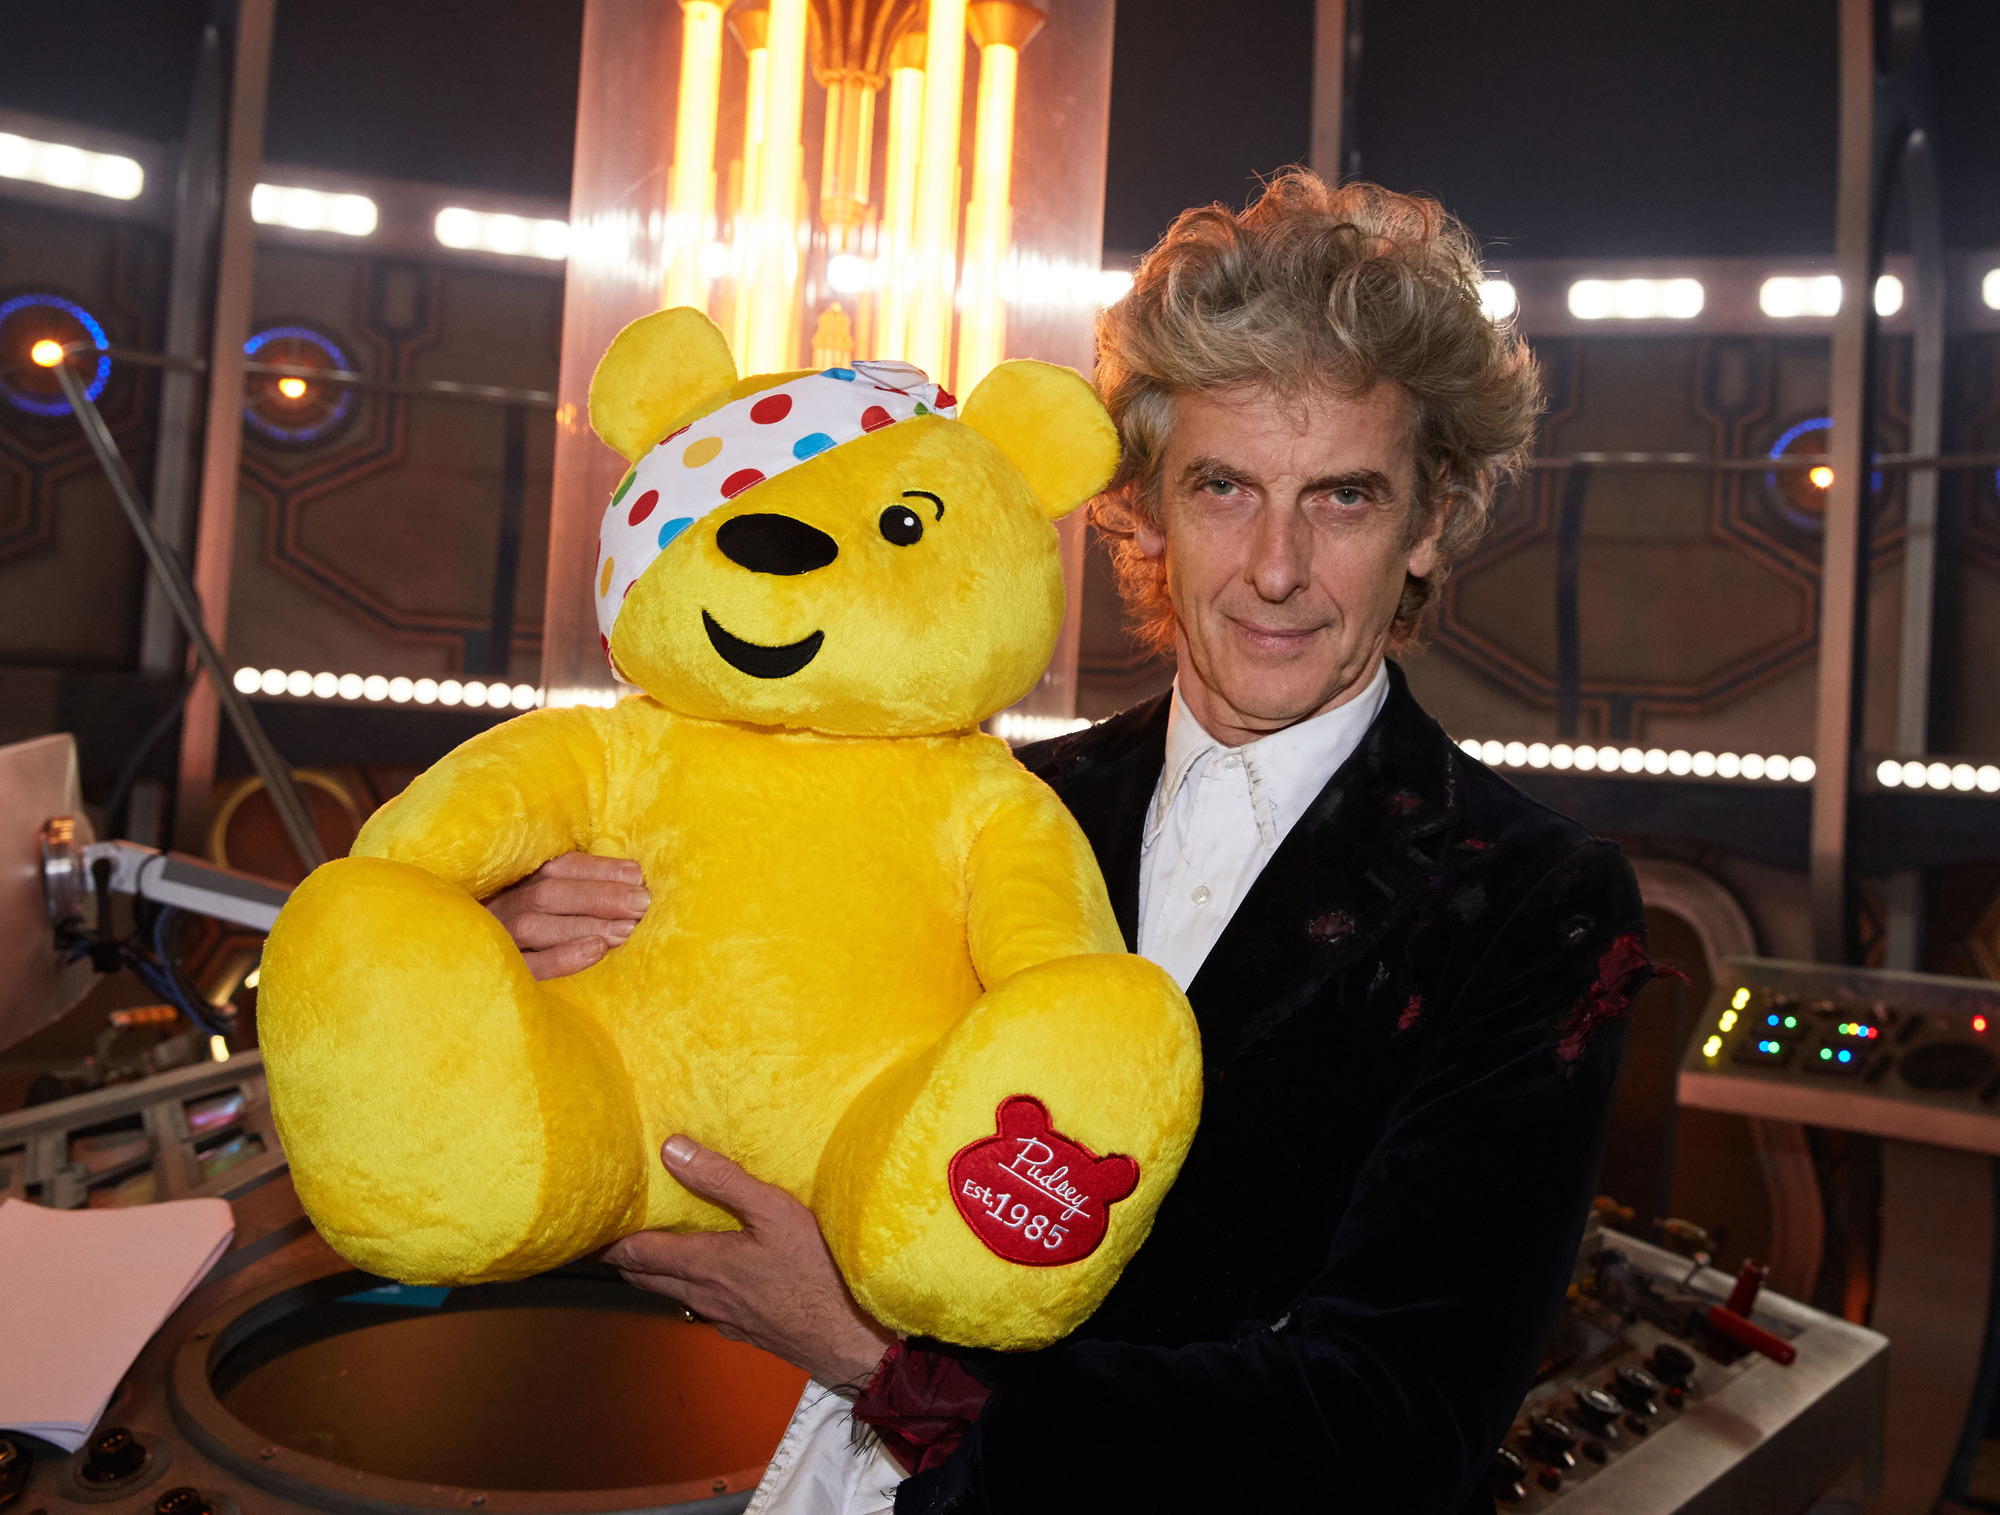 Children in Need raised a whopping £50.1 million this year